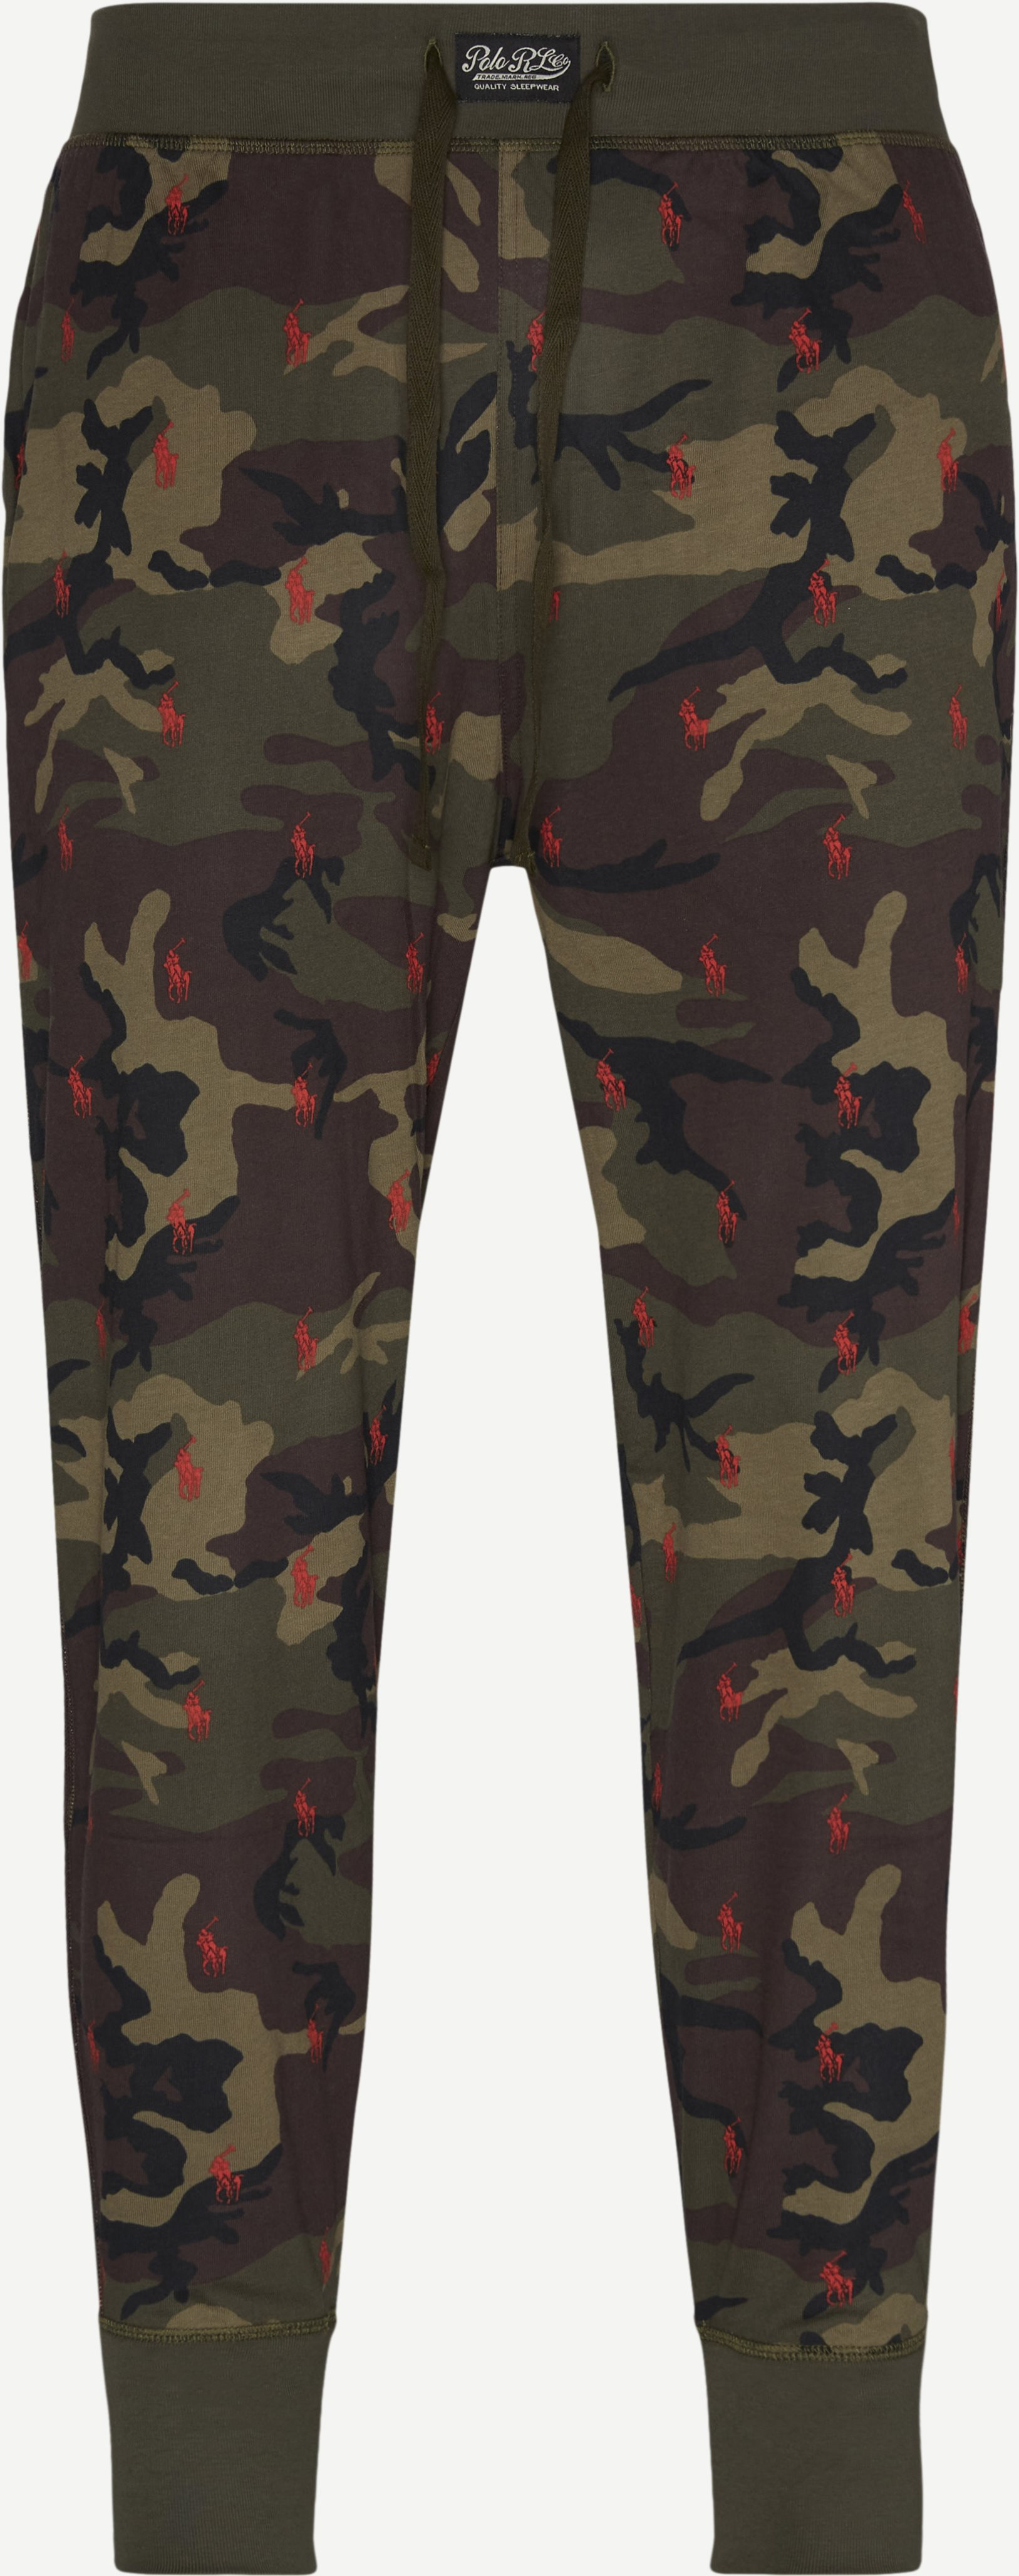 Underwear - Regular - Army